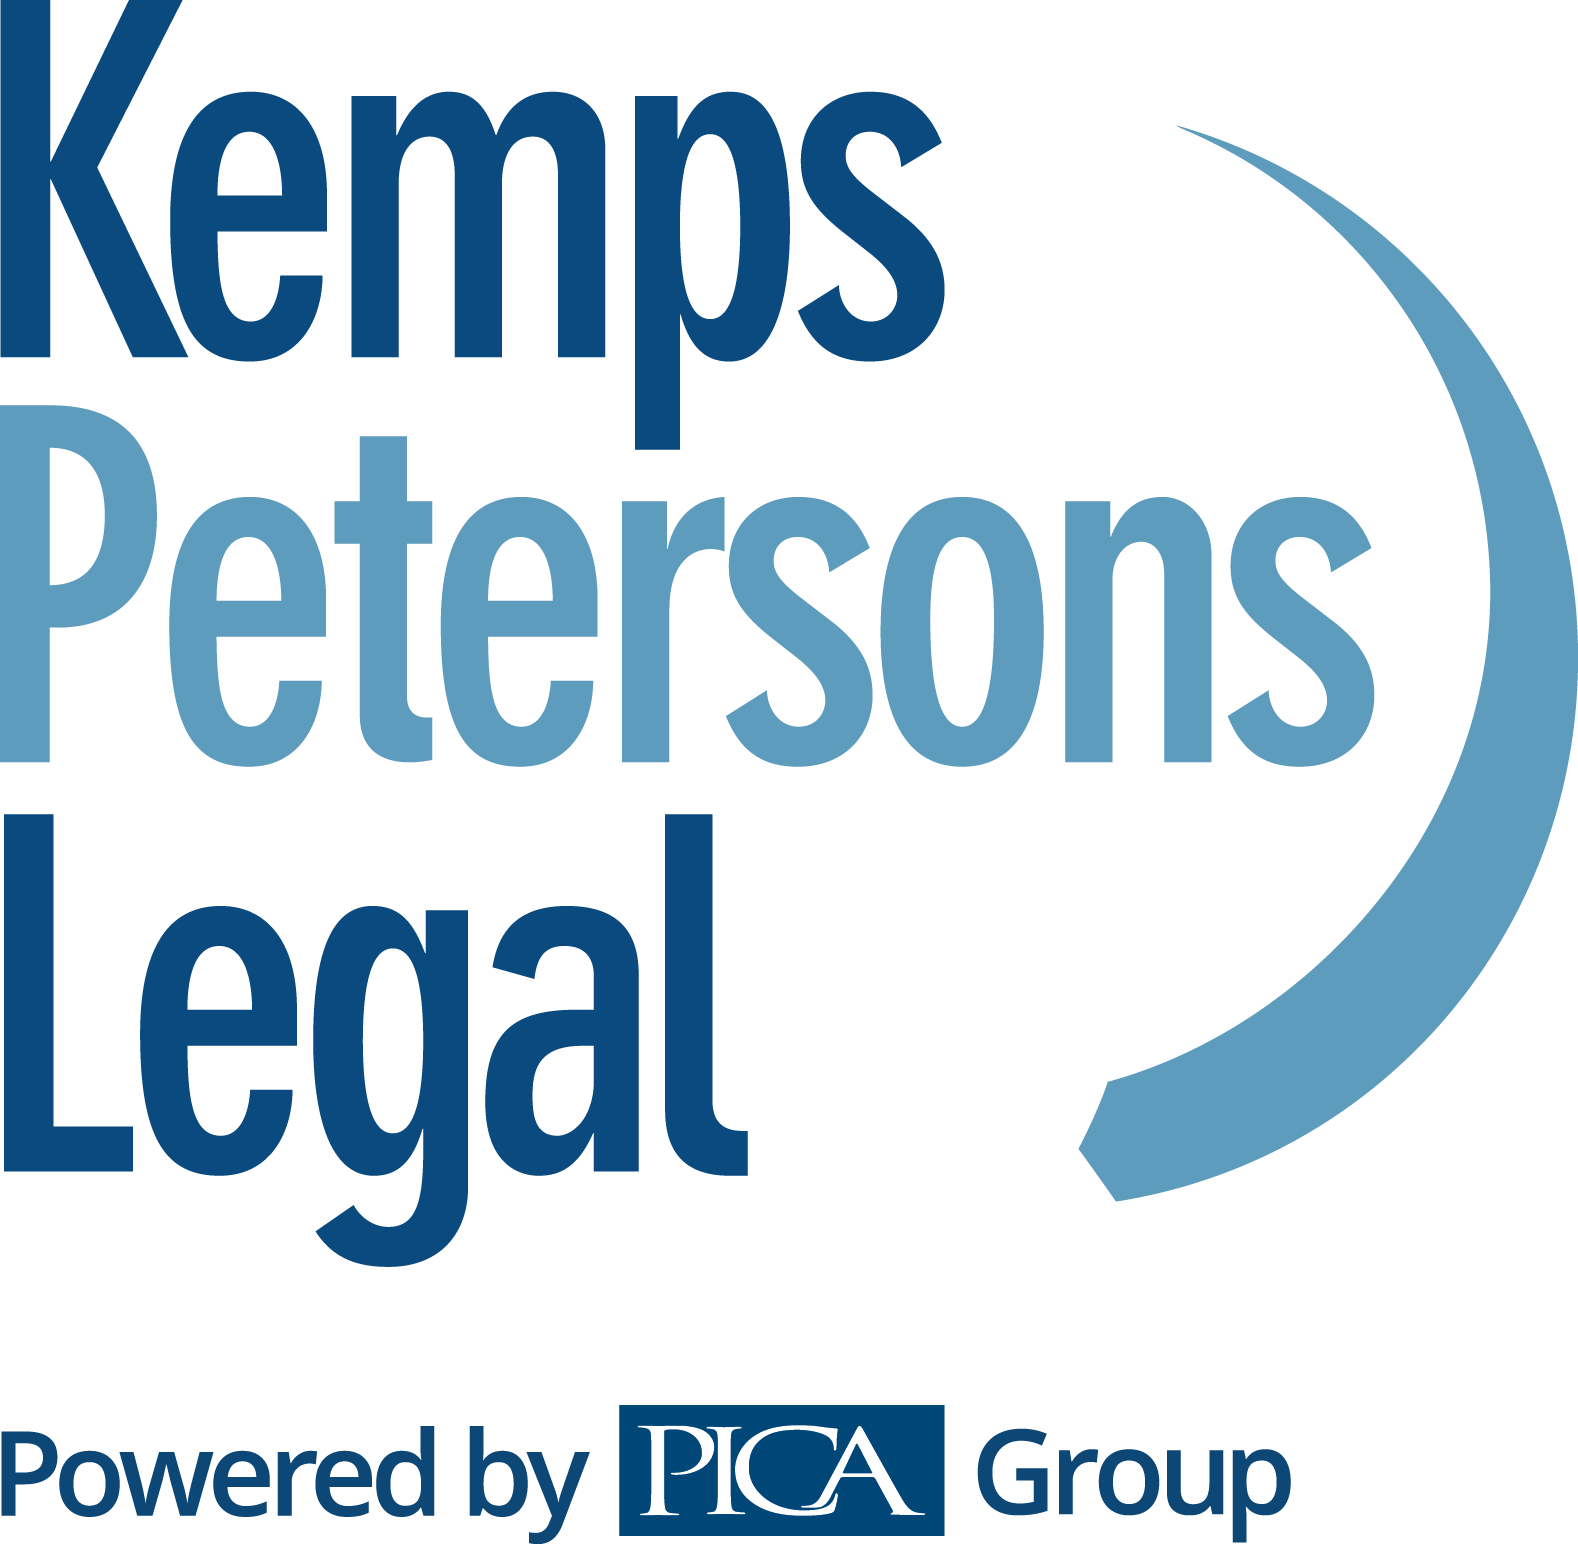 Kemps Petersons Legal Logo